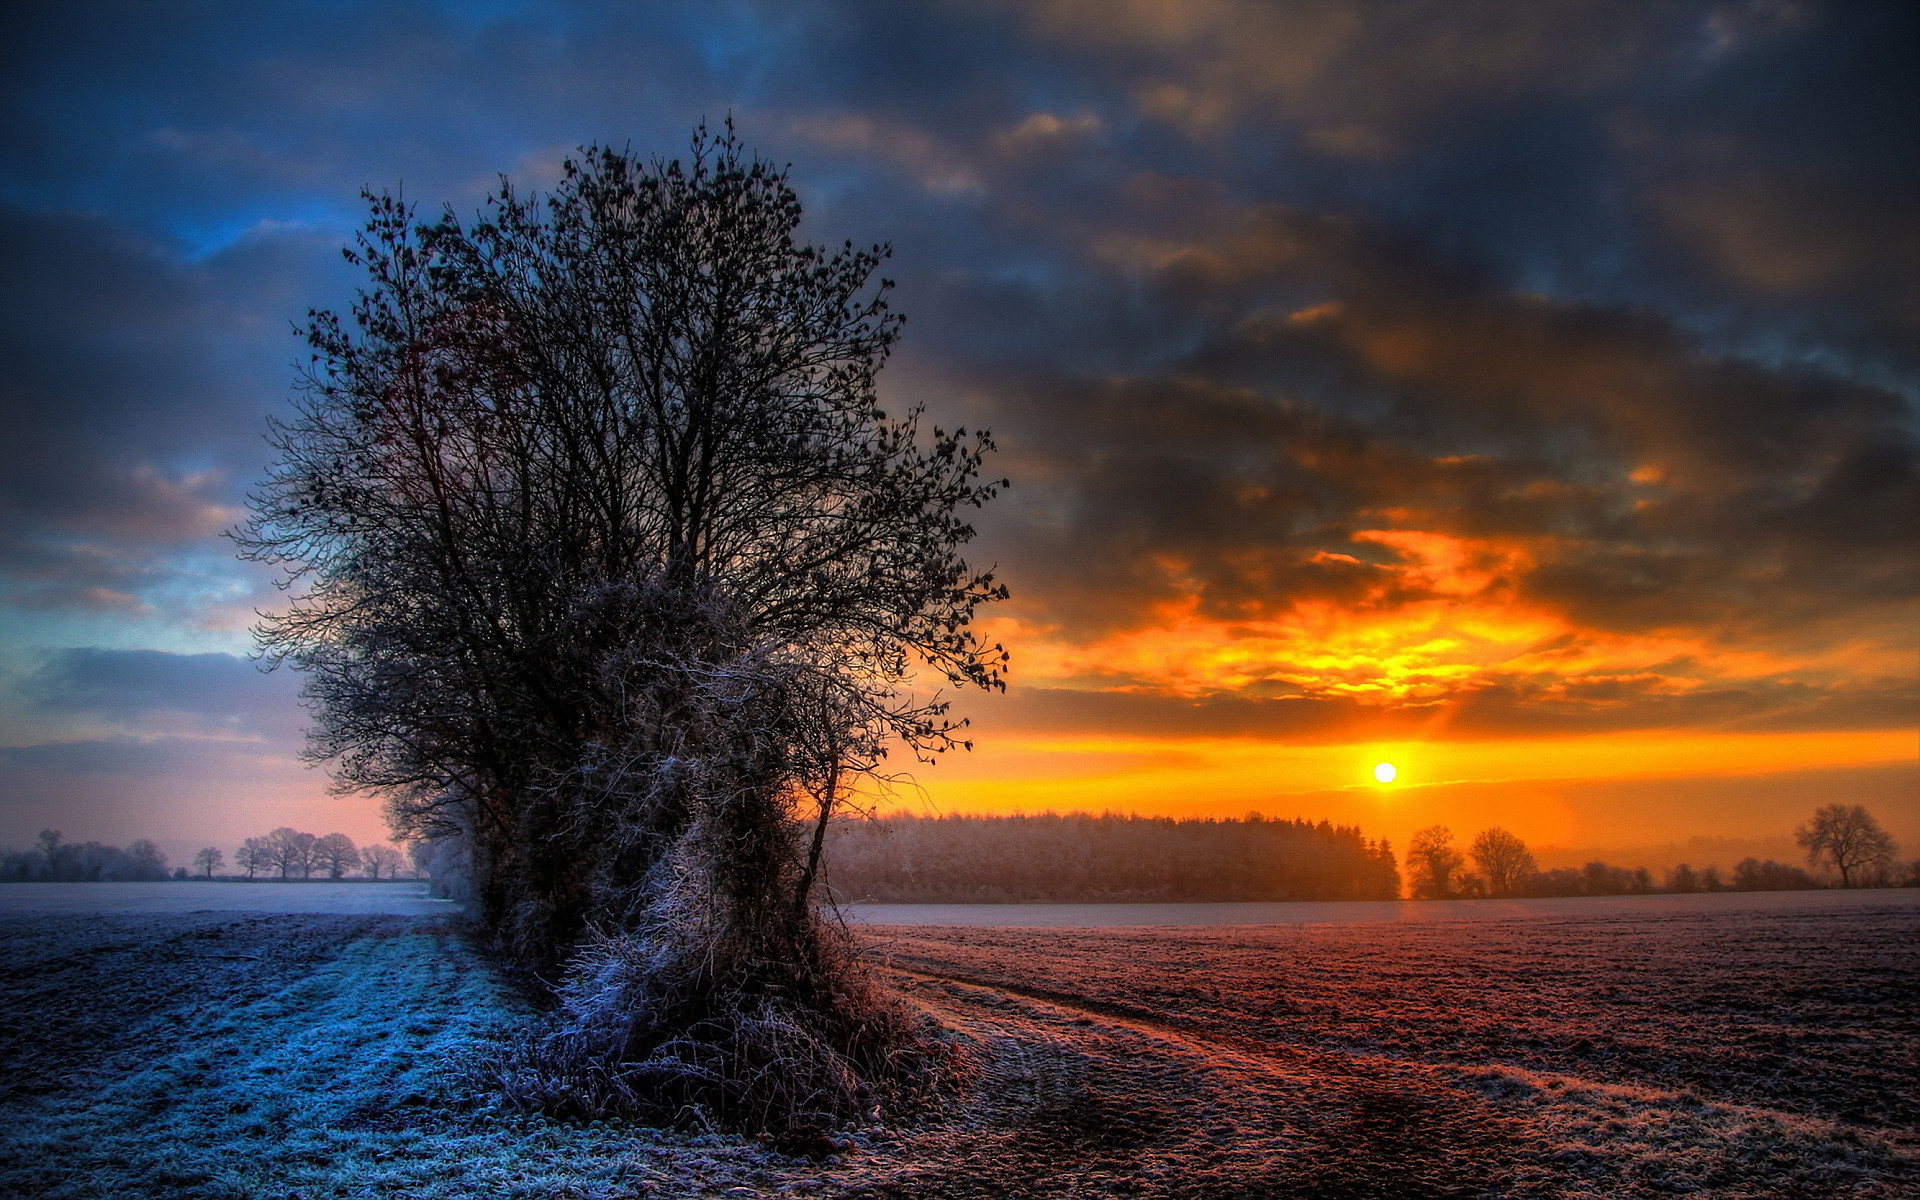 Backgrounds of Winter Scenes – Google Search